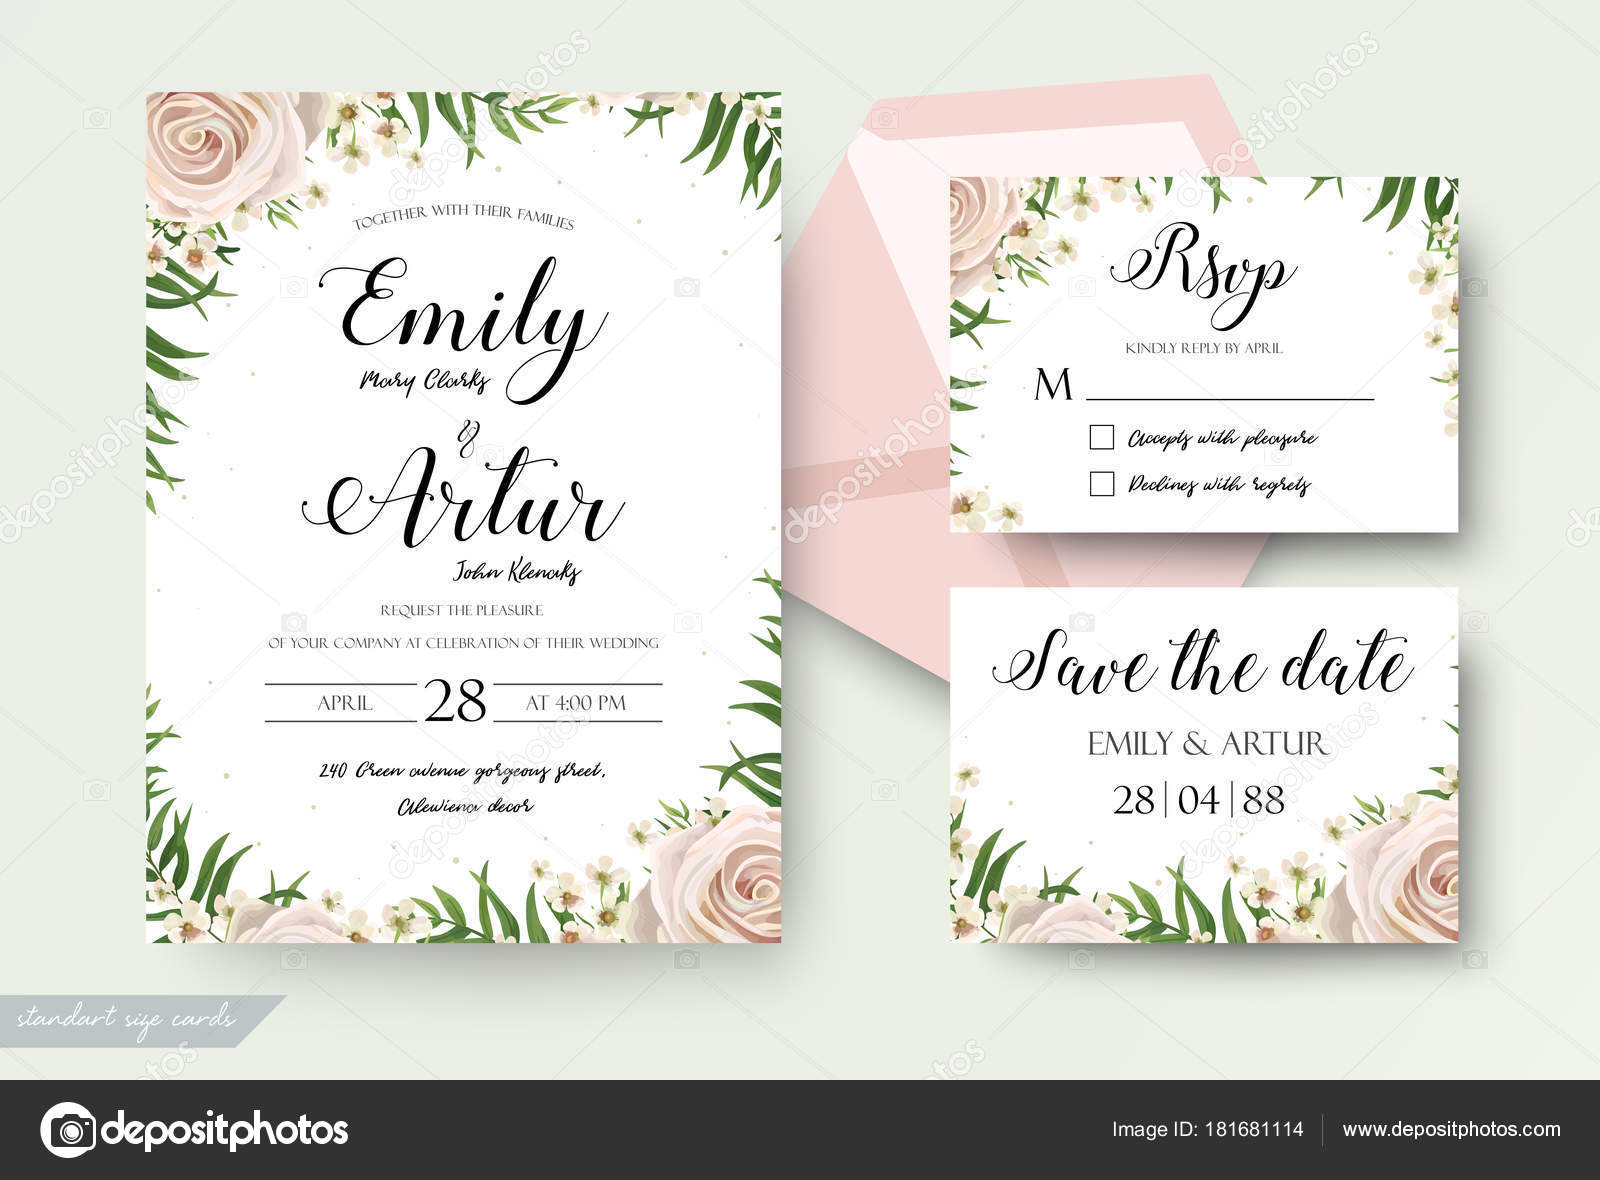 Wedding floral watercolor style invite, rsvp save the date thank you ...